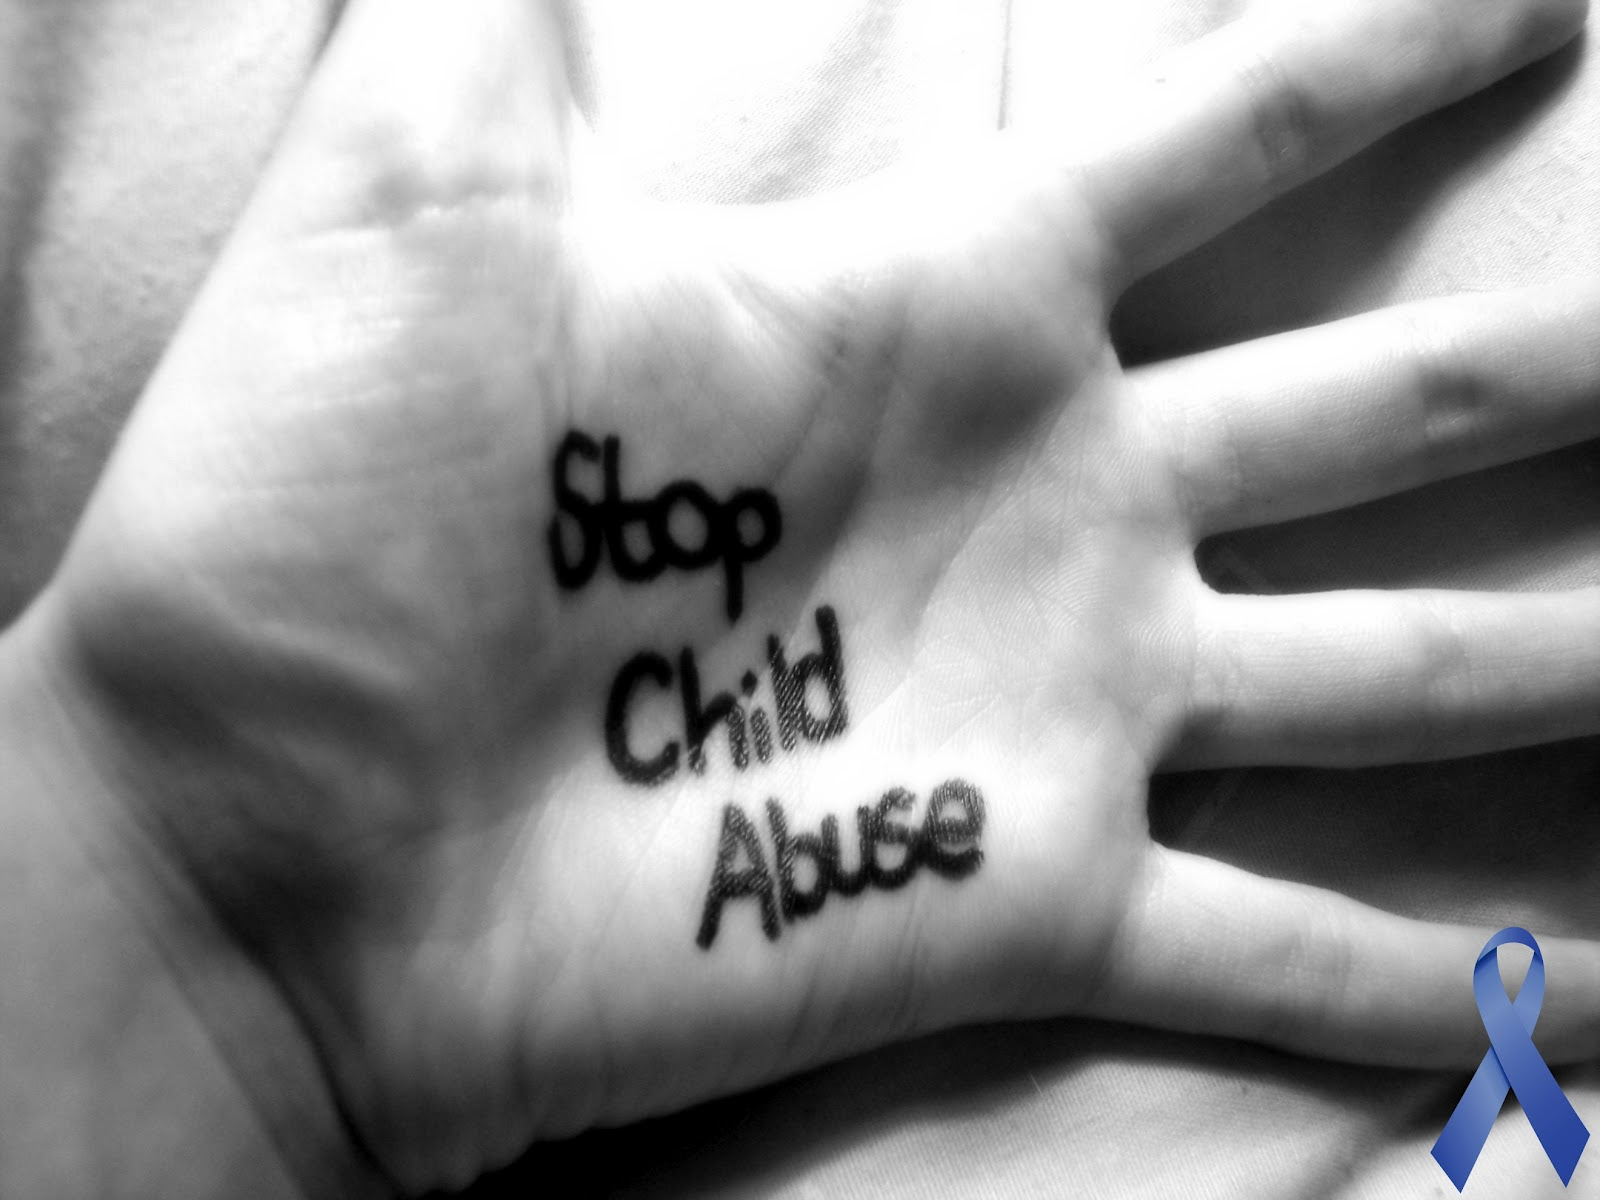 Nspcc child abuse research essay